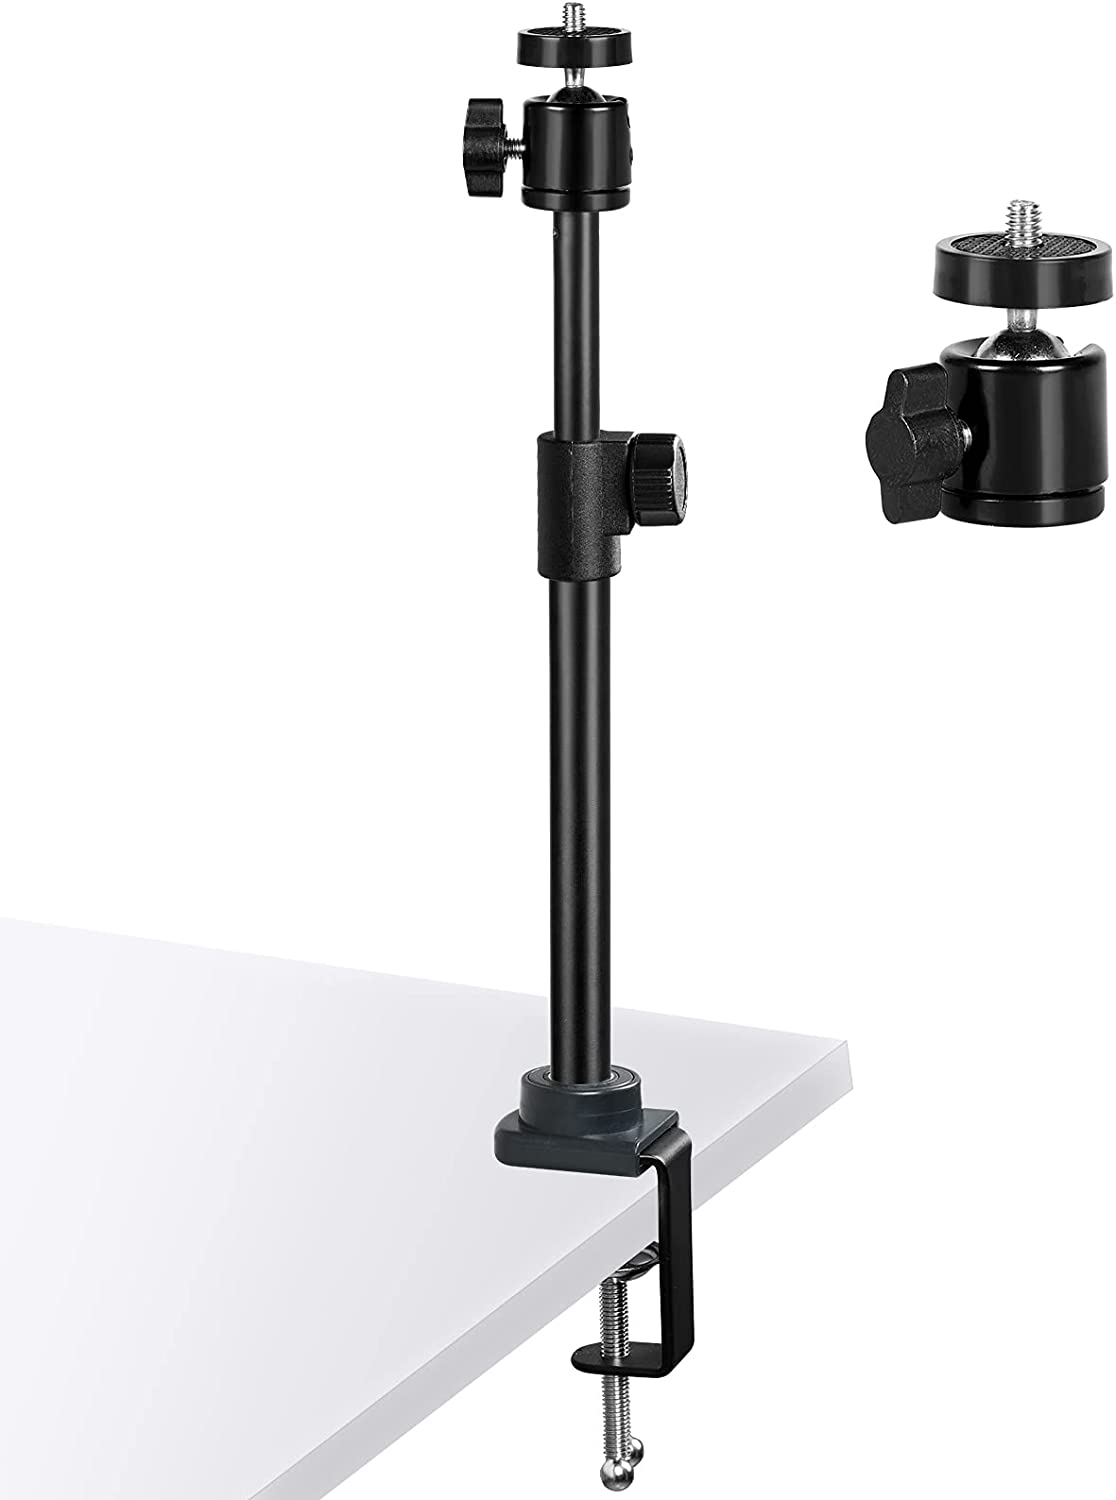 RUICHUANG Heavy Duty Desk Mount 14.5-27.5 inches Stand 37-70cm Spring new work one Mail order after another